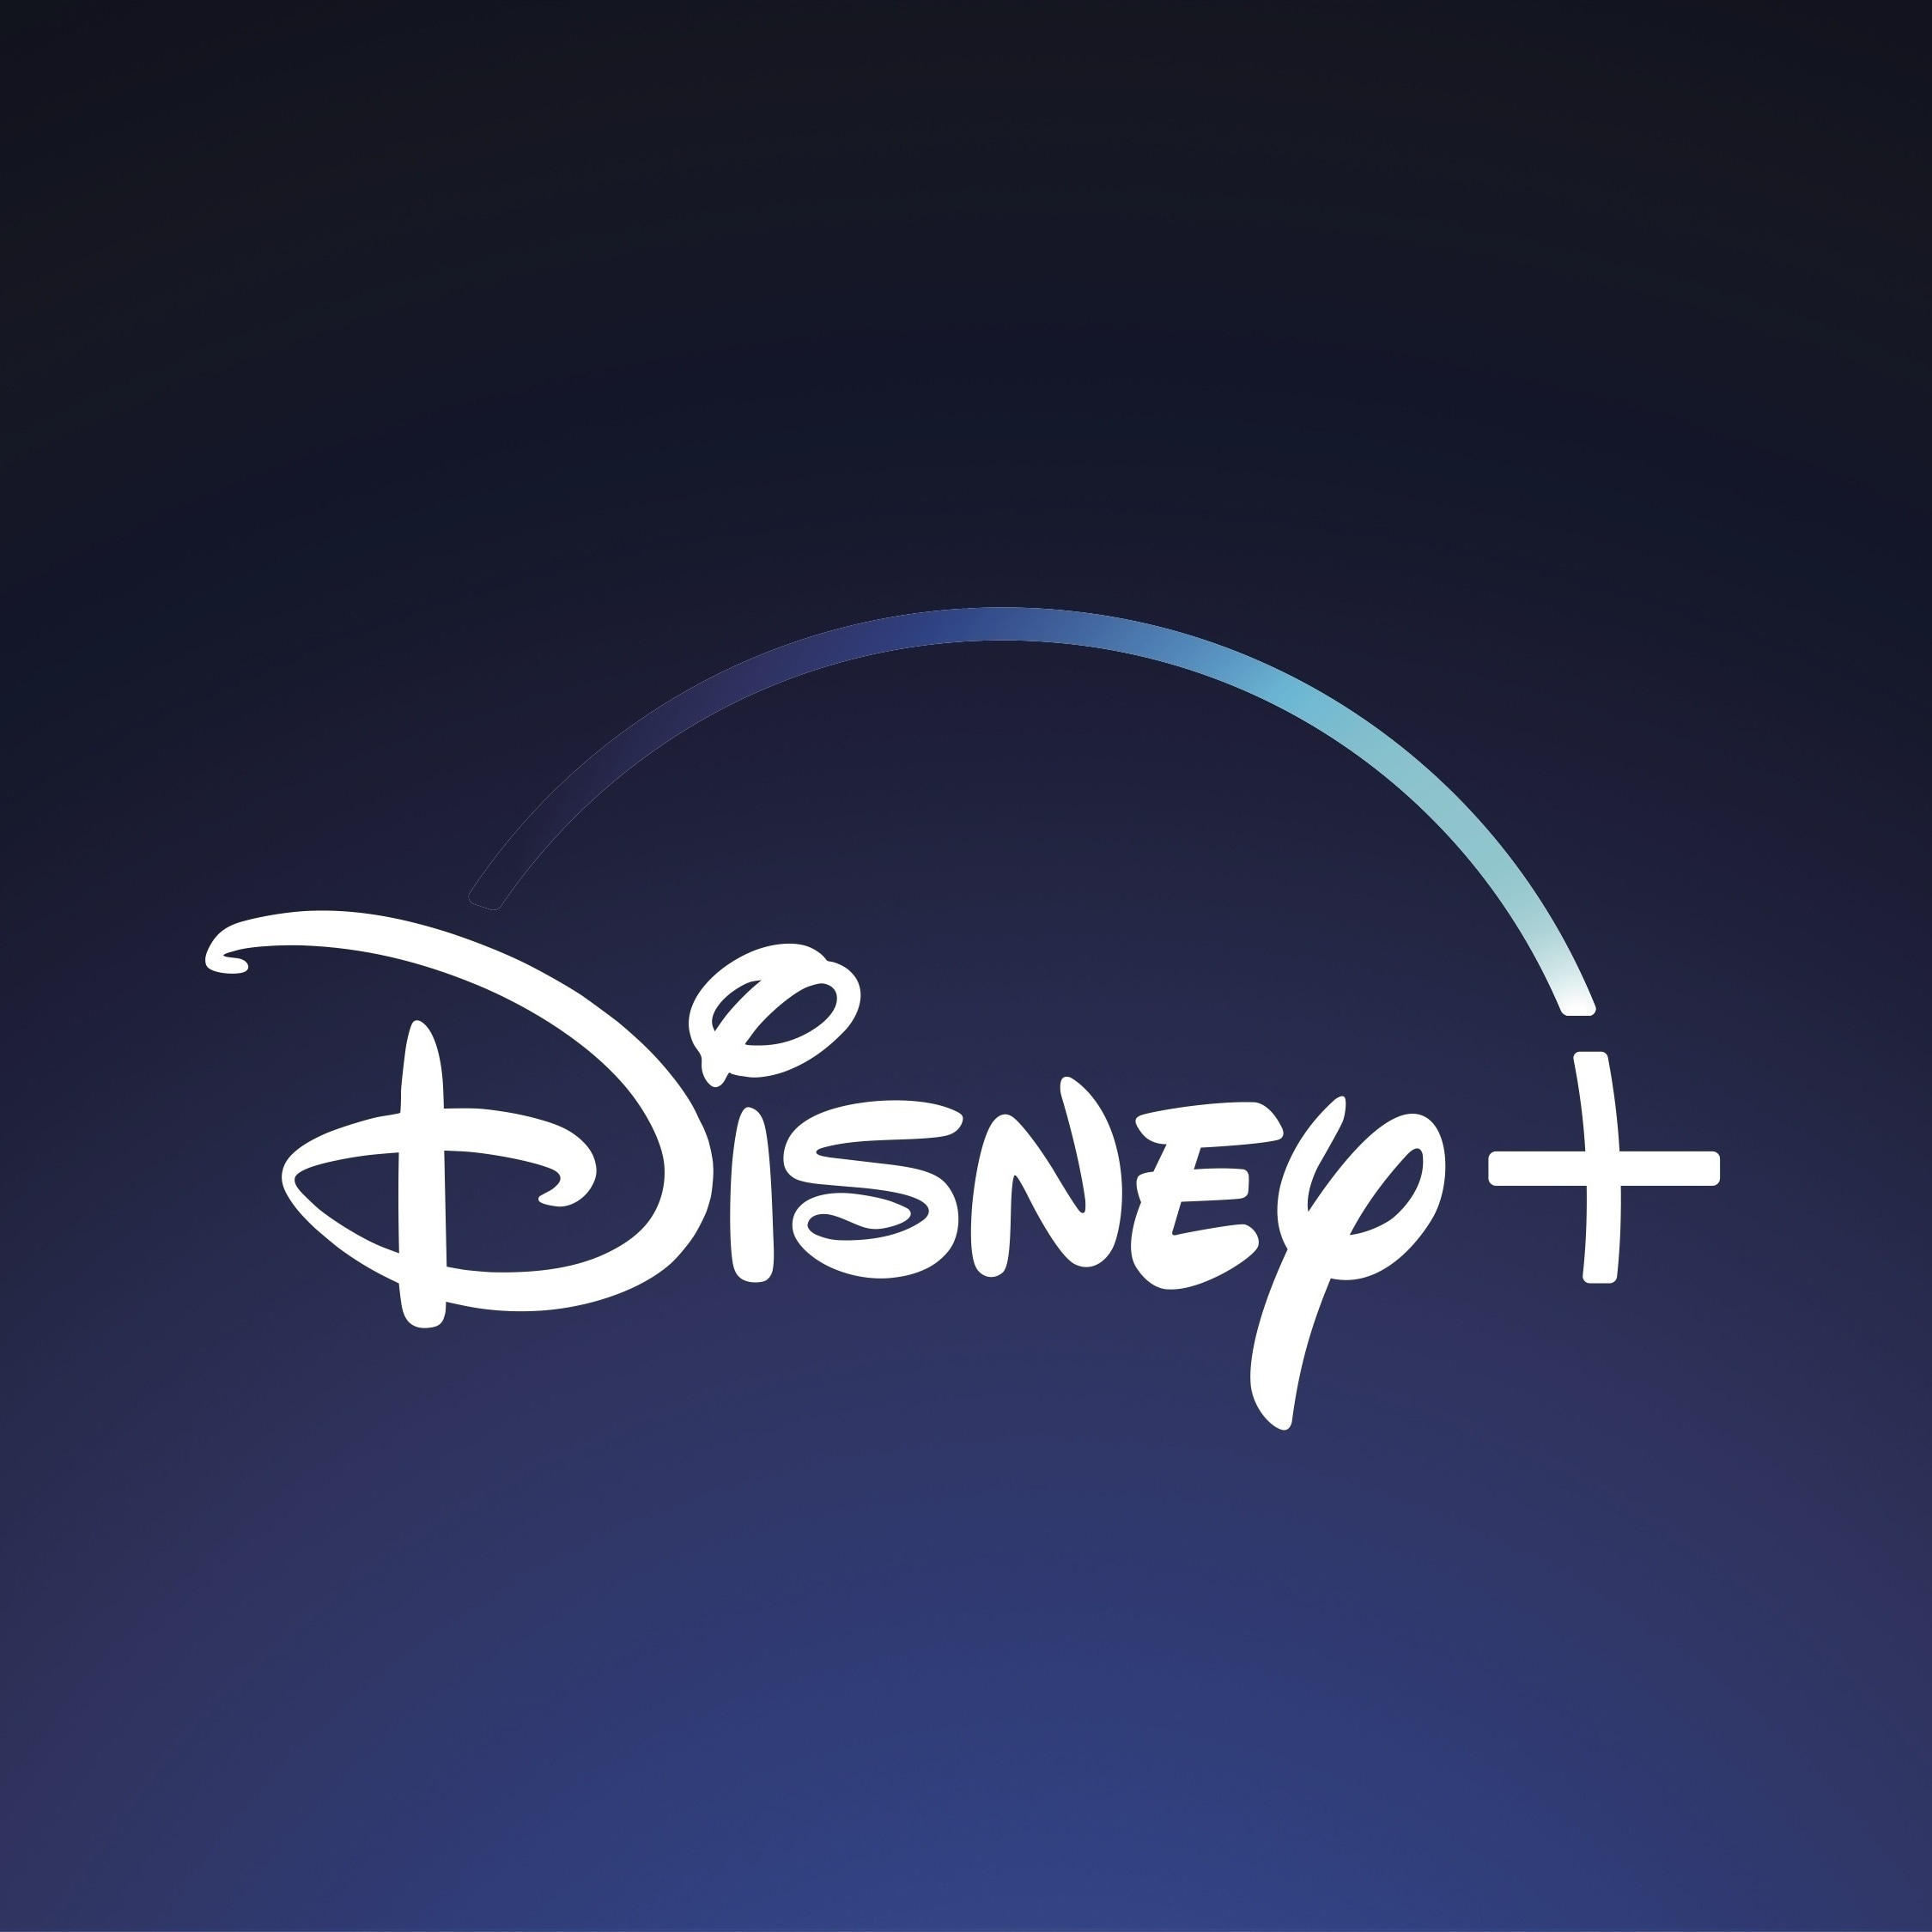 World's Best Stories coming to India on 3 April with Disney+ Hotstar